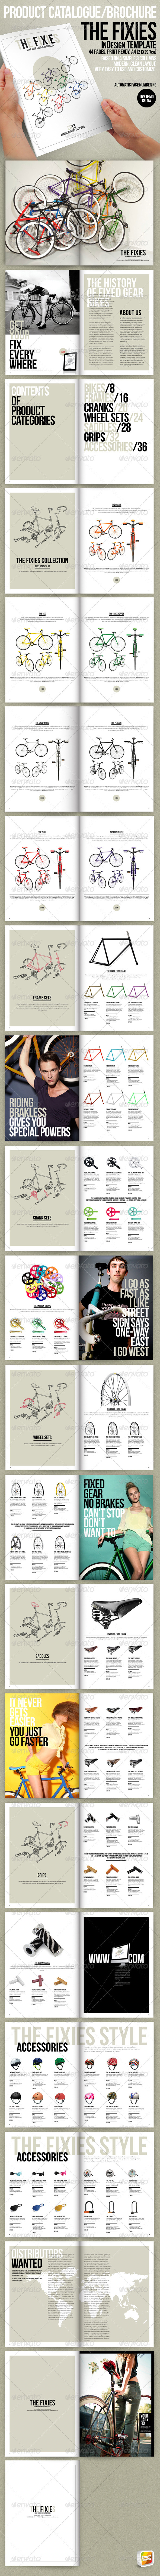 GraphicRiver The Fixies-Product Catalogue InDesign template 3737063